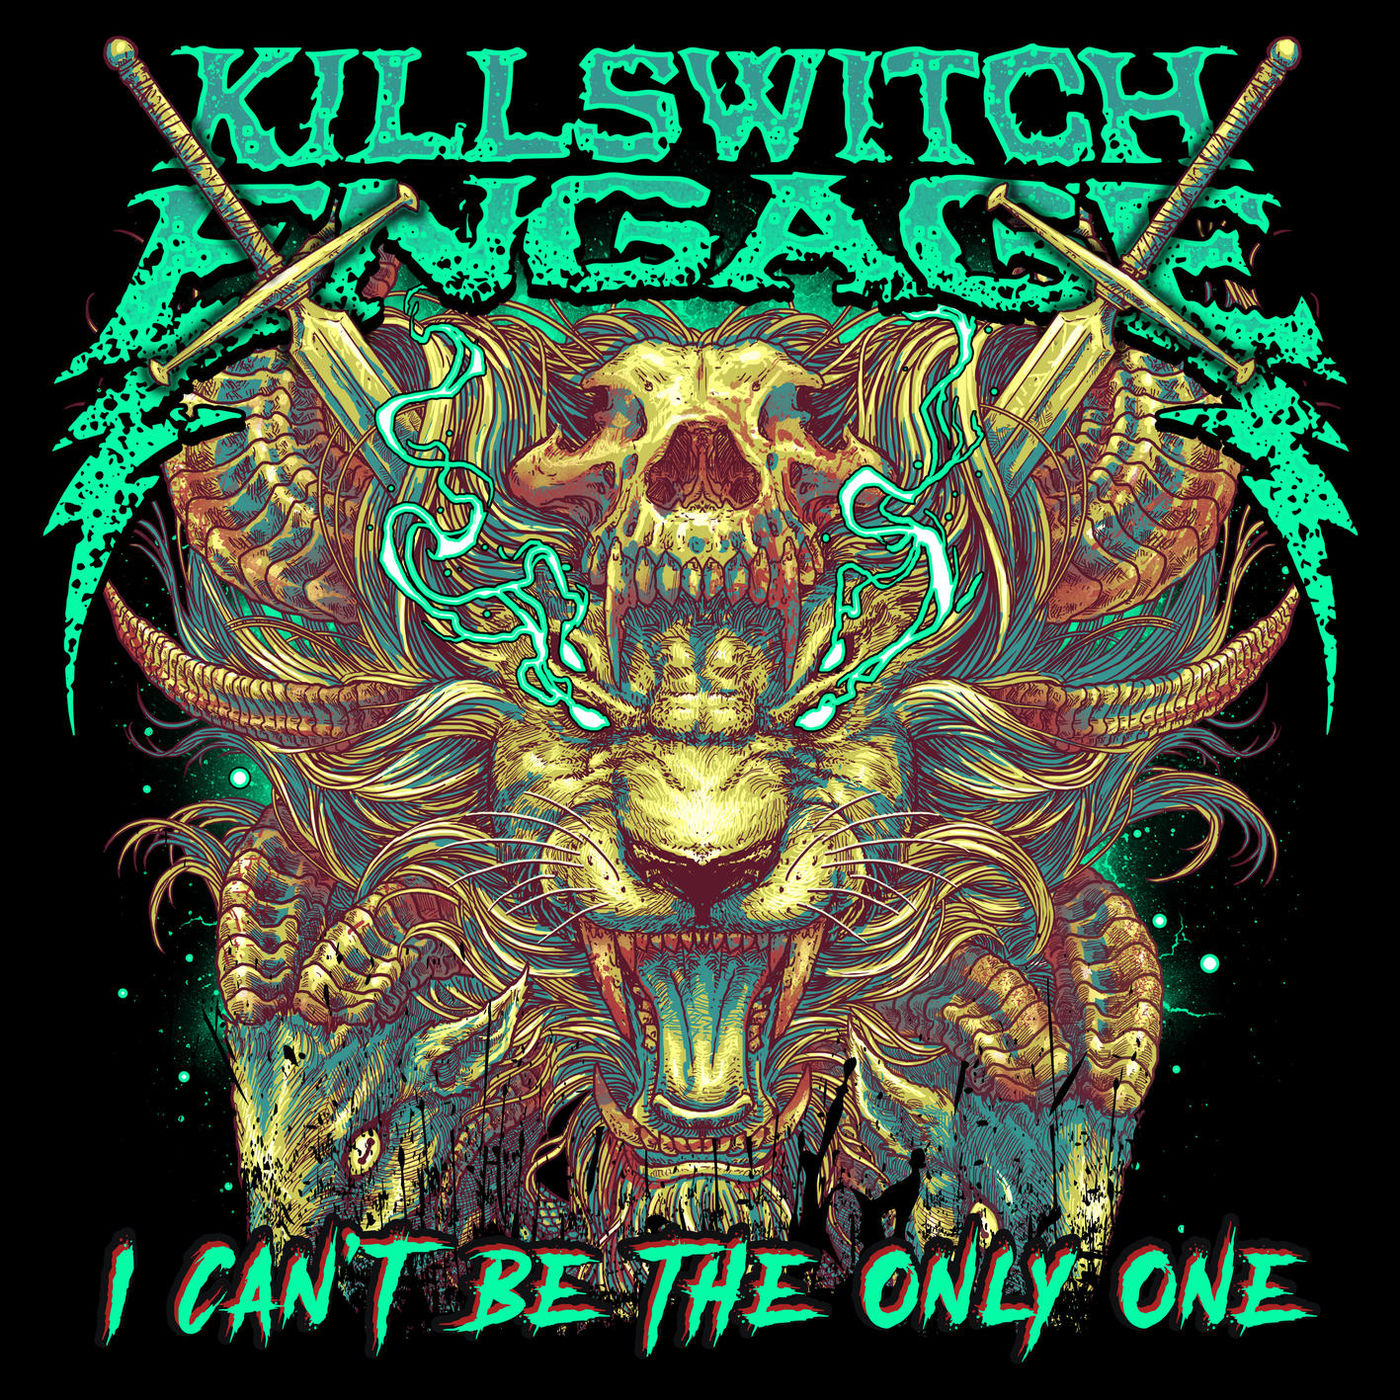 Killswitch Engage - I Can't Be the Only One (Alternate Edit) [single] (2020)